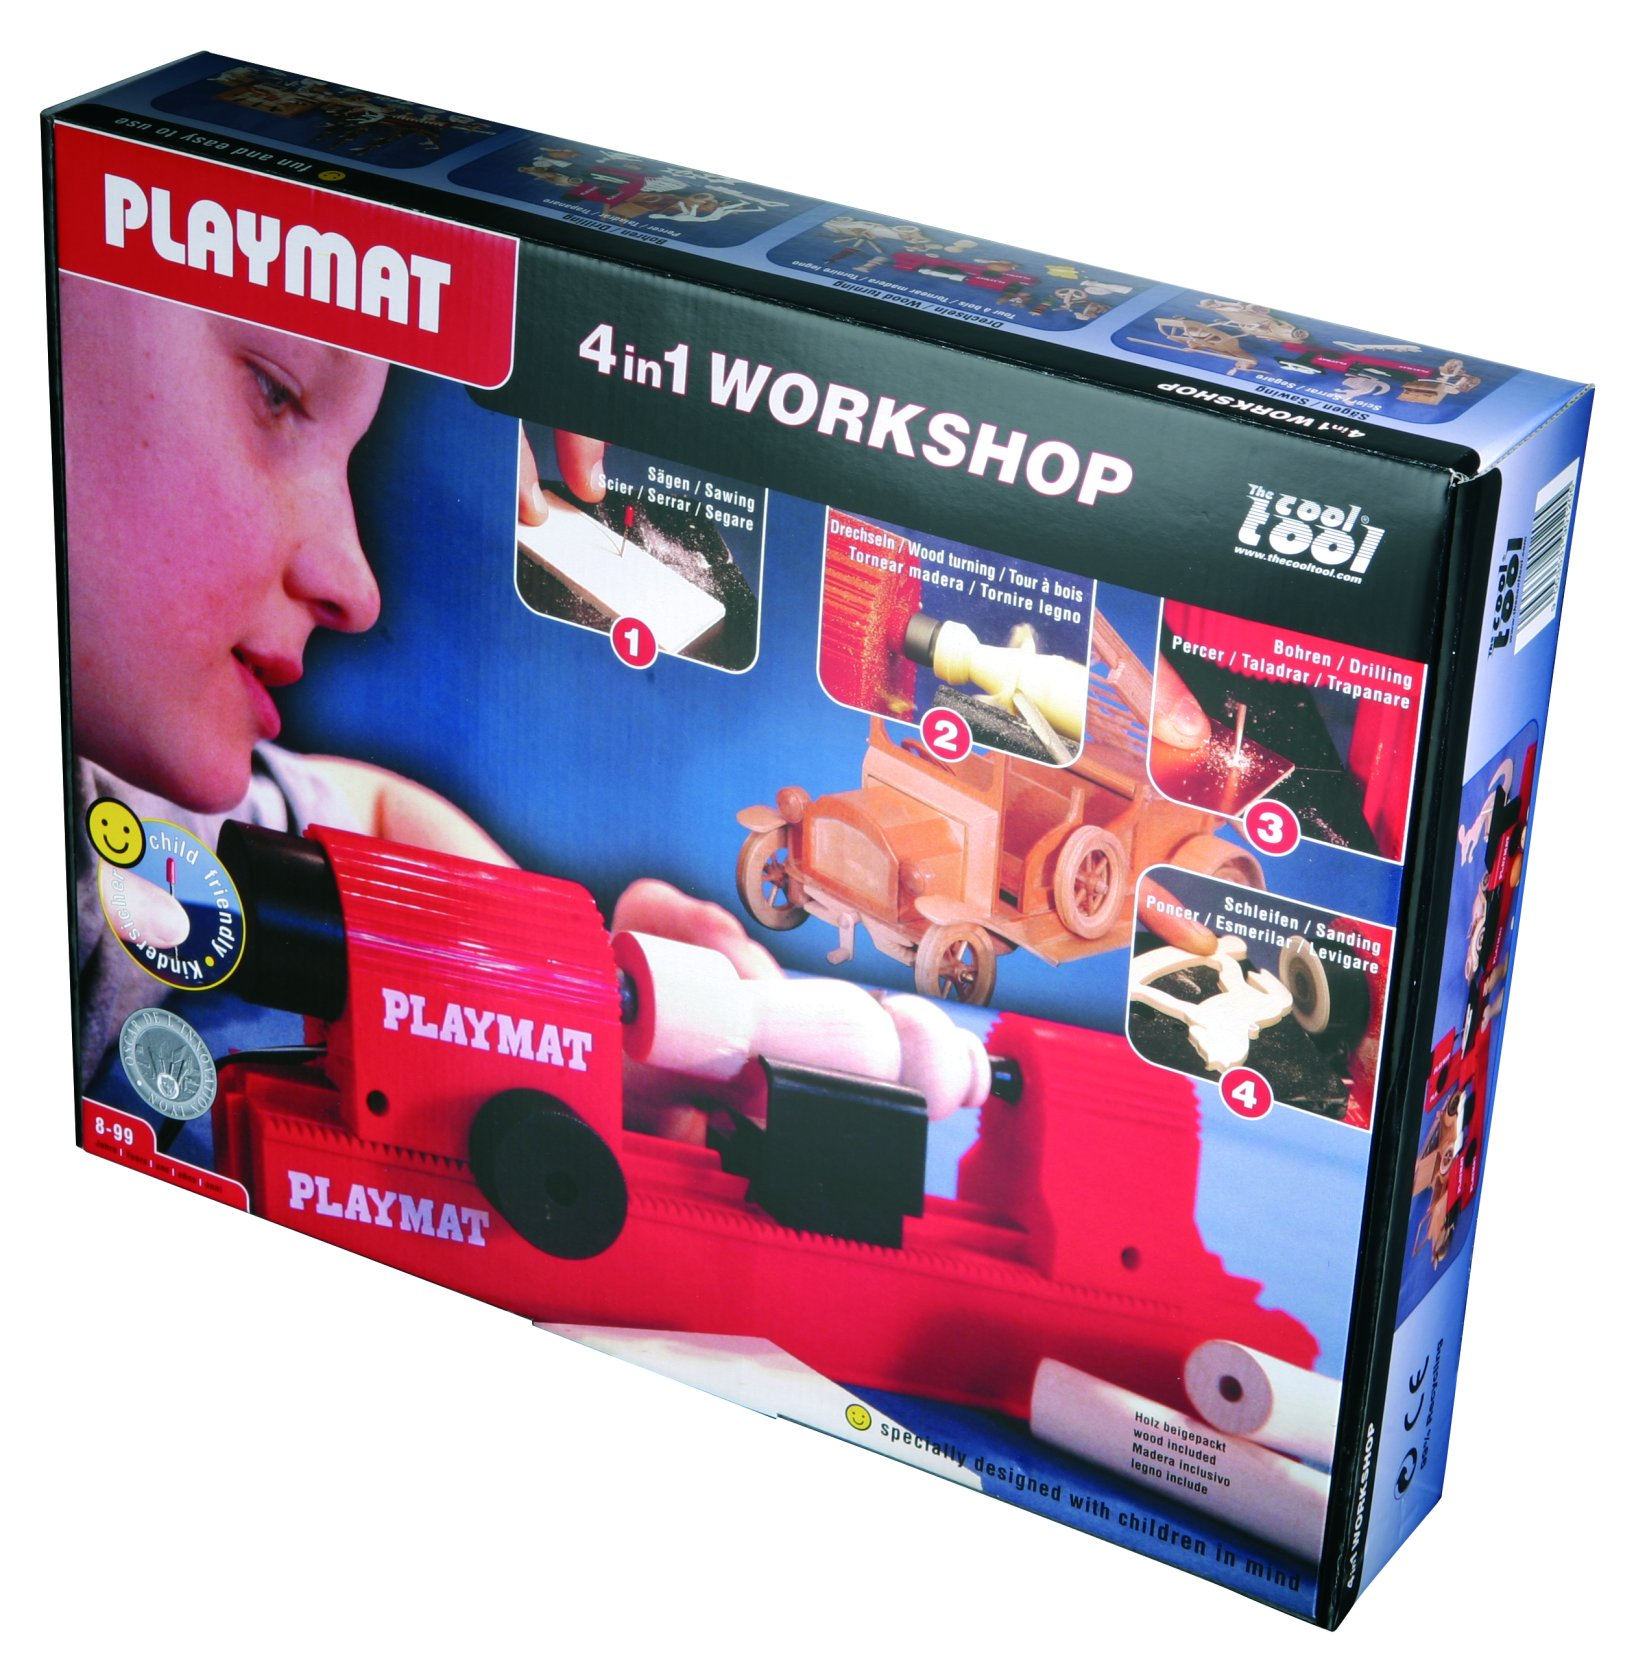 Playmat Modelling tool kit 4in1 specifally for kids